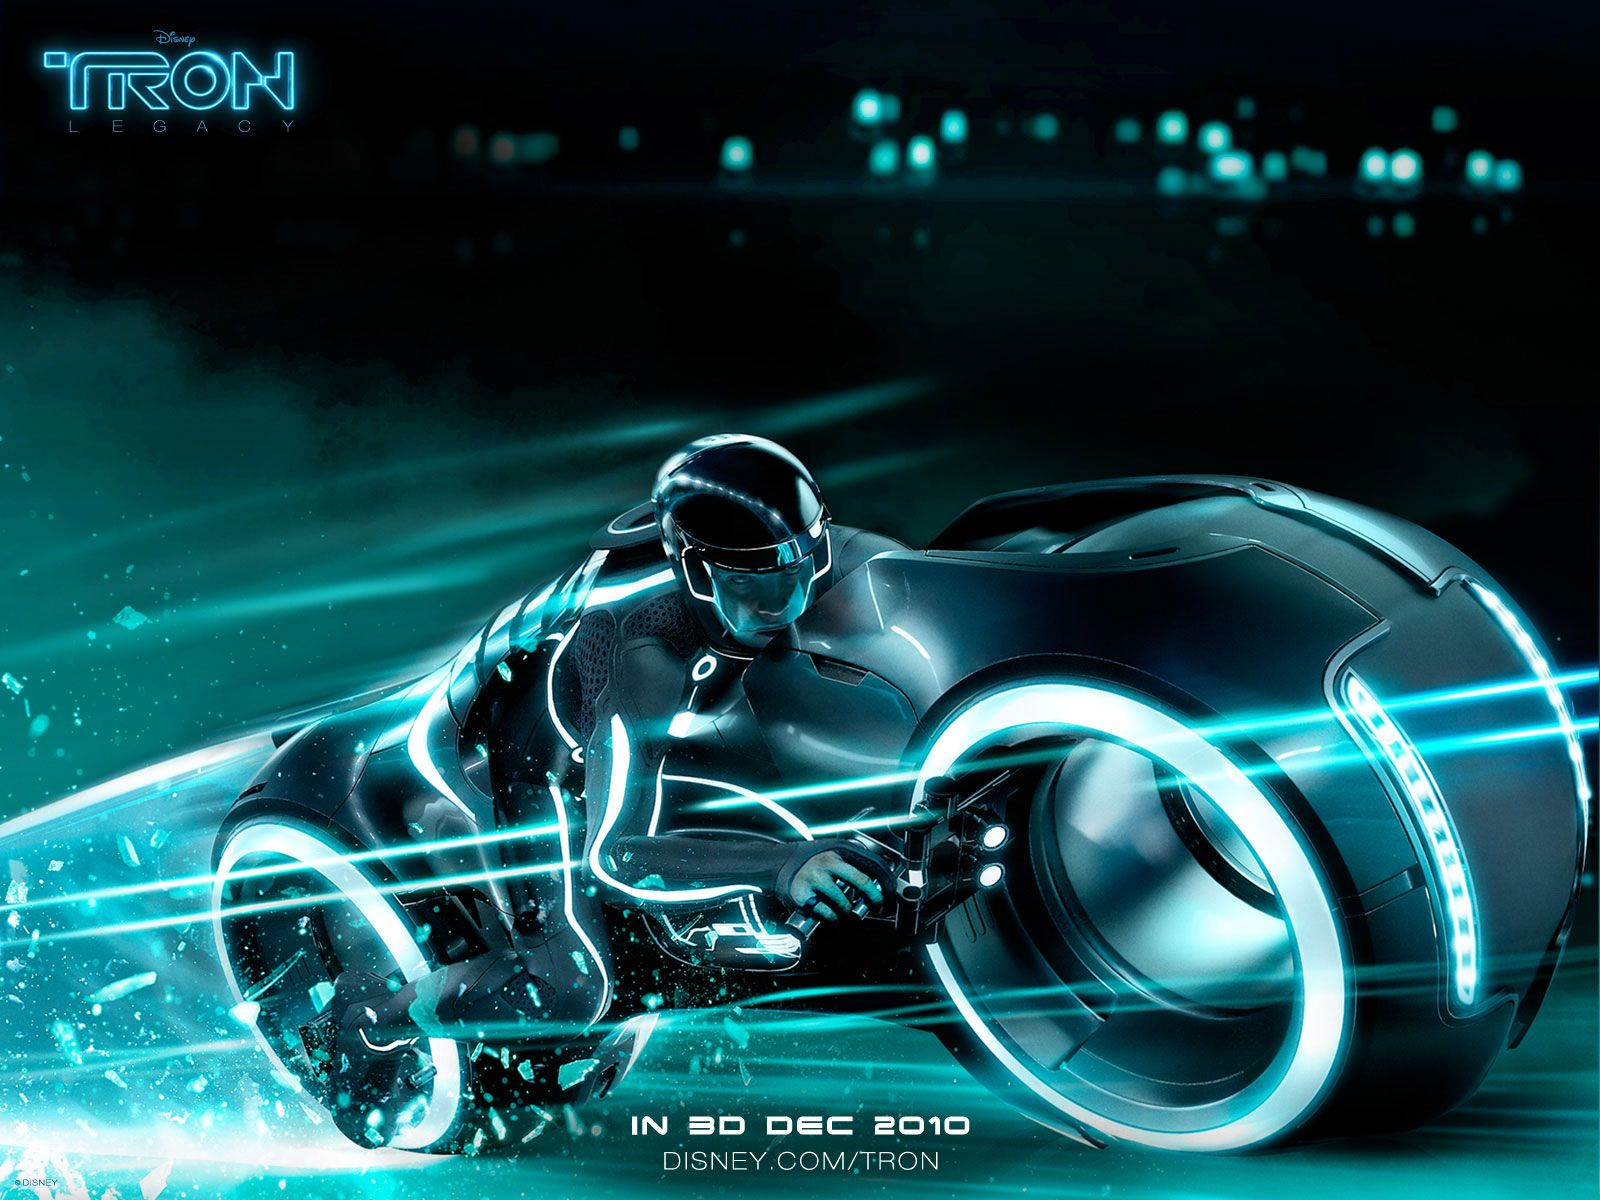 Pin By Made Line On Action Pinterest Tron Legacy Tron Bike And